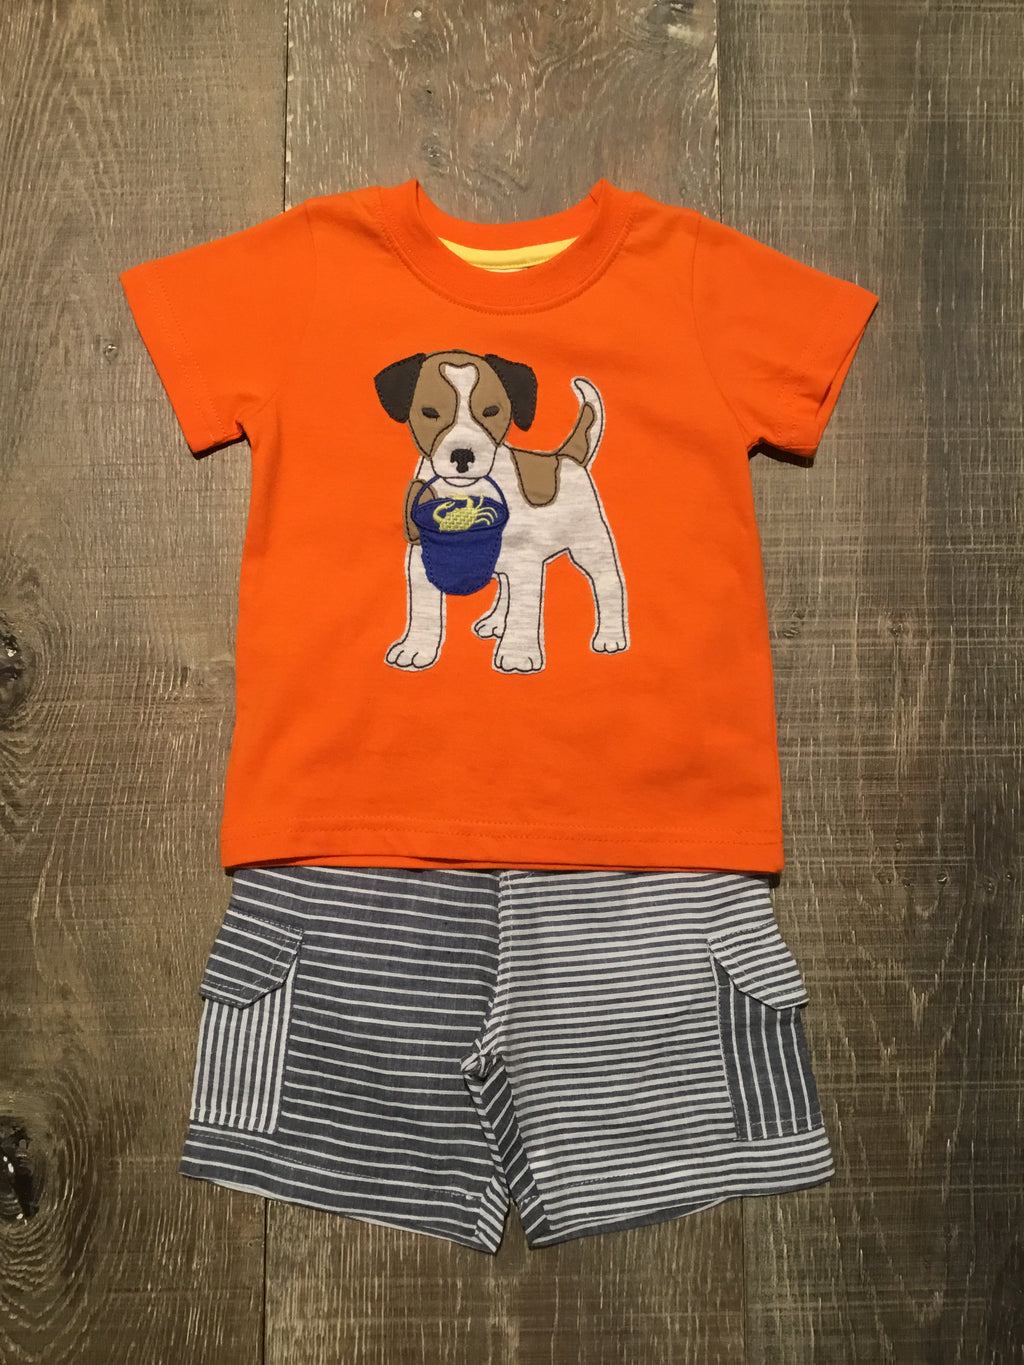 Beach Dog Shirt & Shorts Set